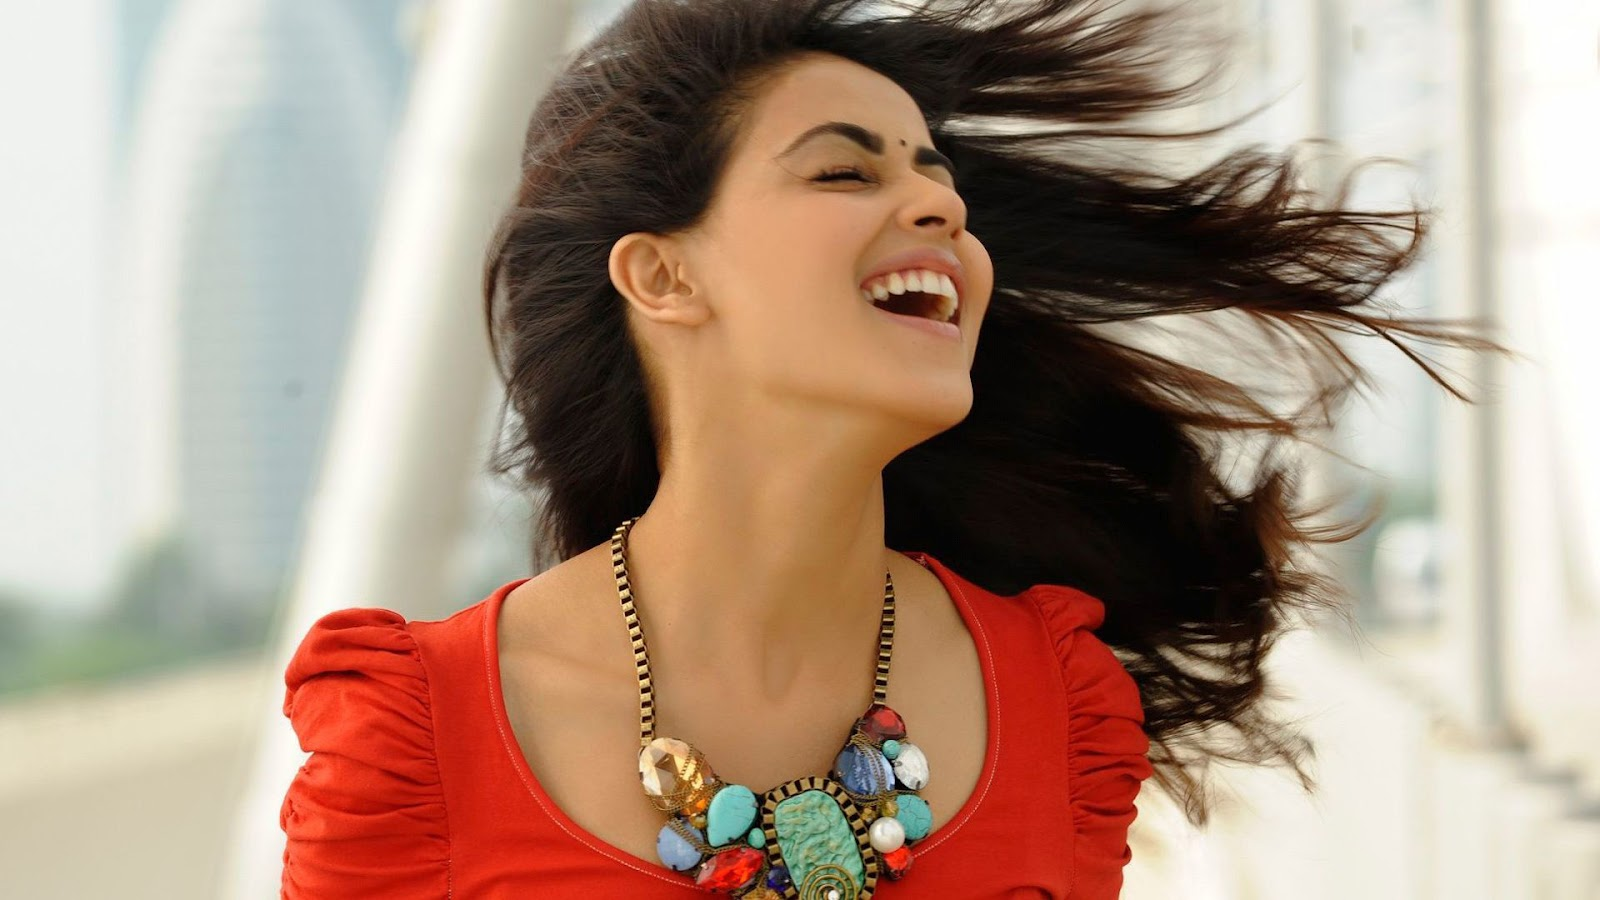 HD wallpapers: HD Genelia D'Souza Cute and Hot Wallpapers